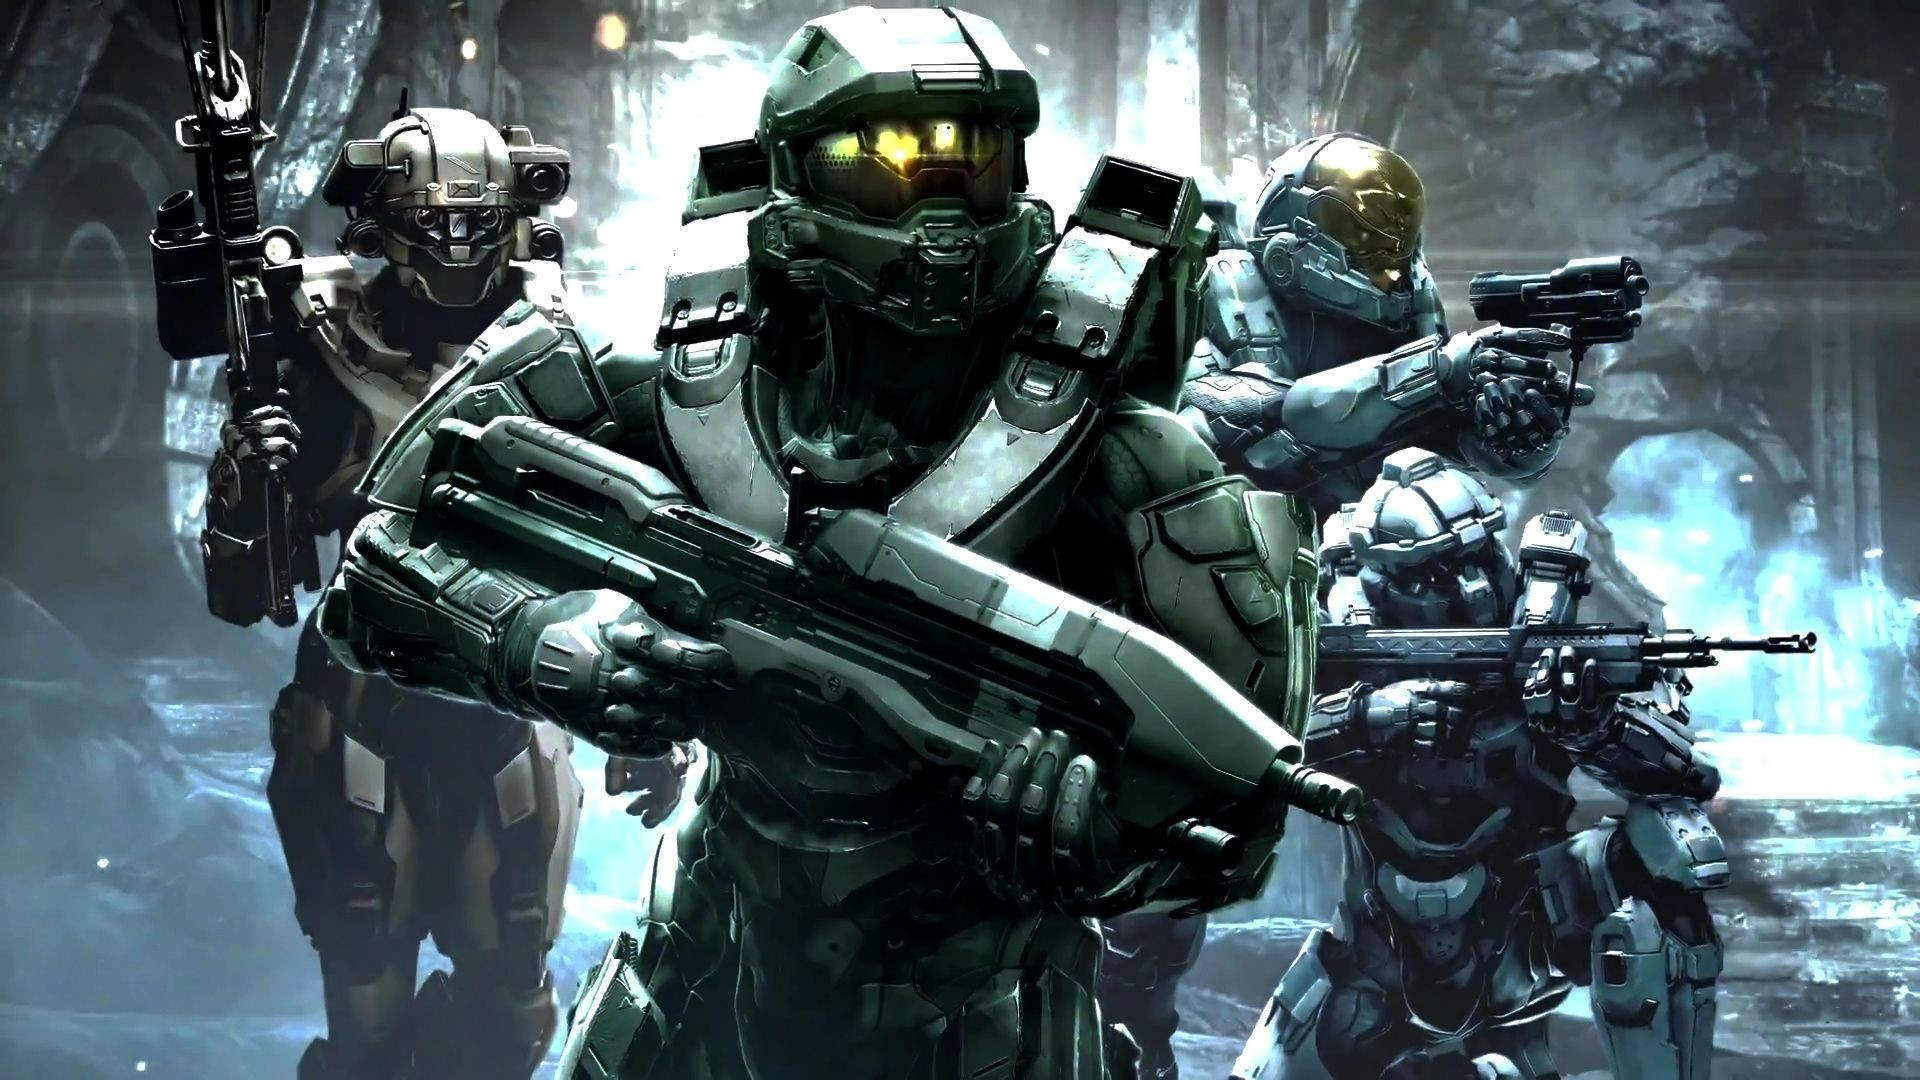 1920x1080 Halo 5 Master Chief HD Desktop Background Wallpapers 14153 .